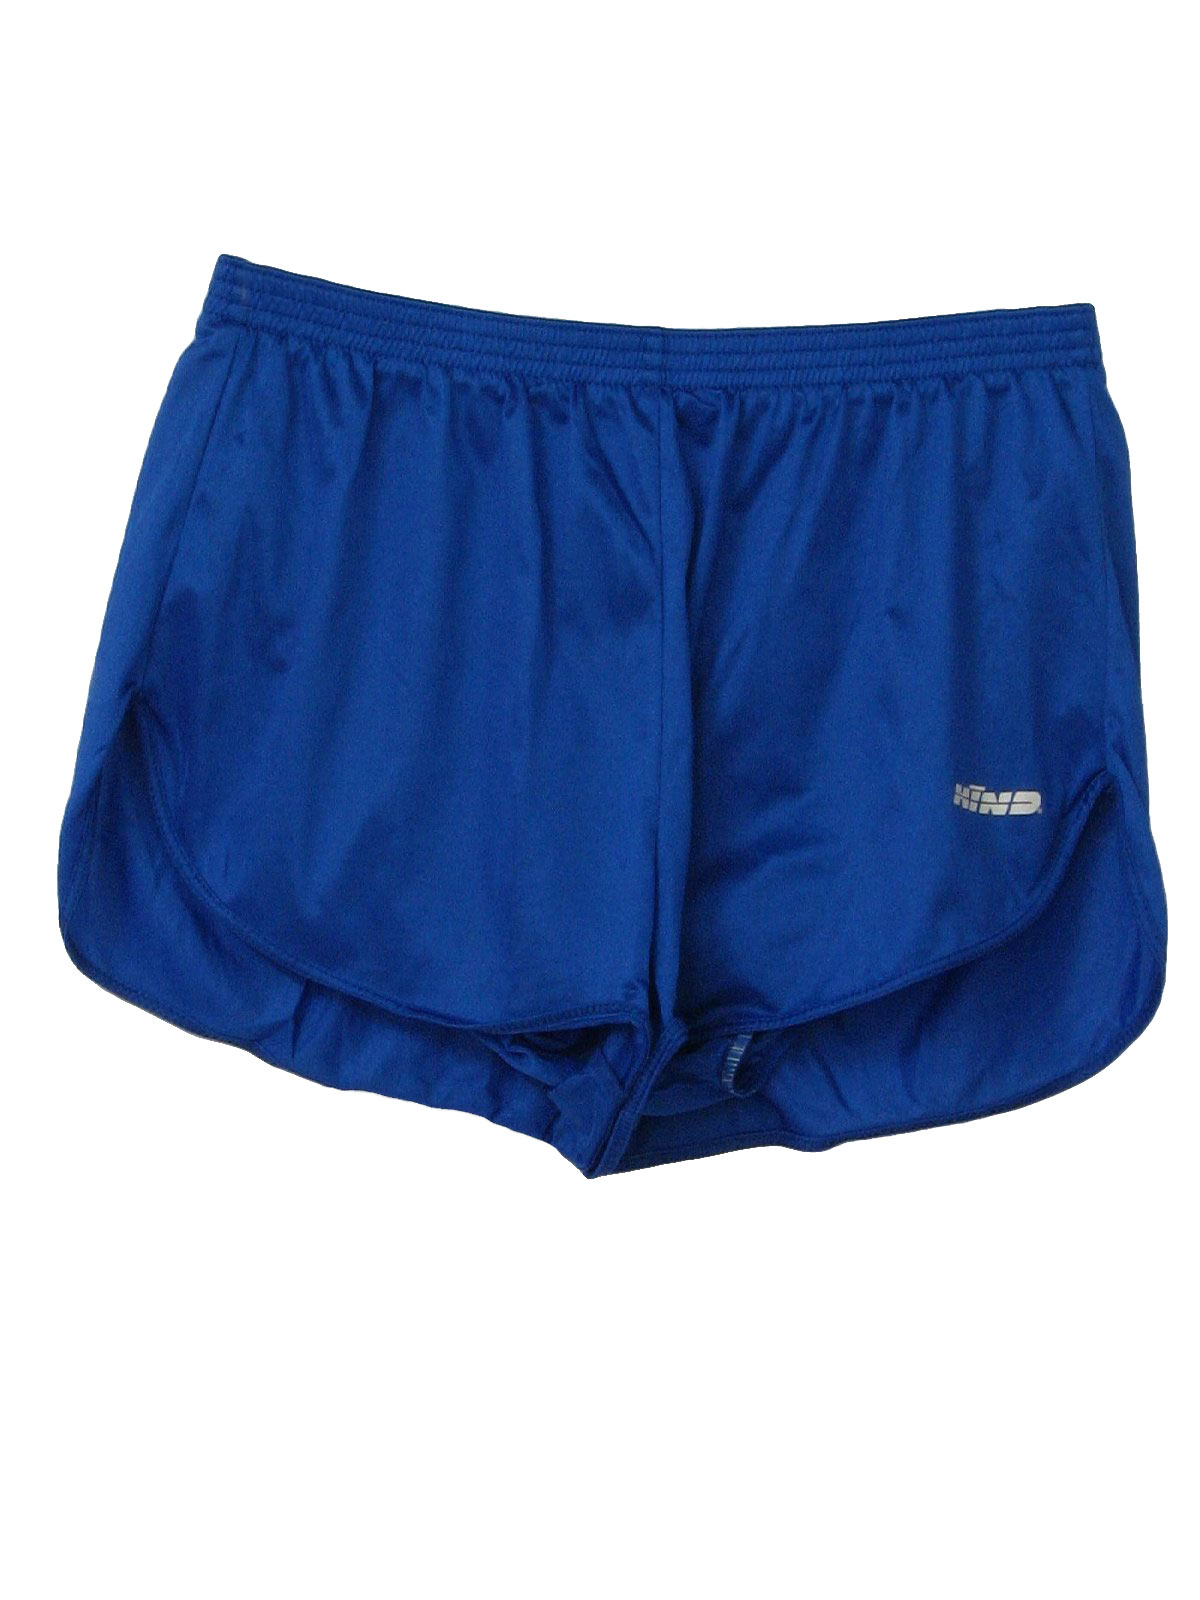 Vintage 90s Shorts: 90s -Hind- Mens blue nylon on nylon